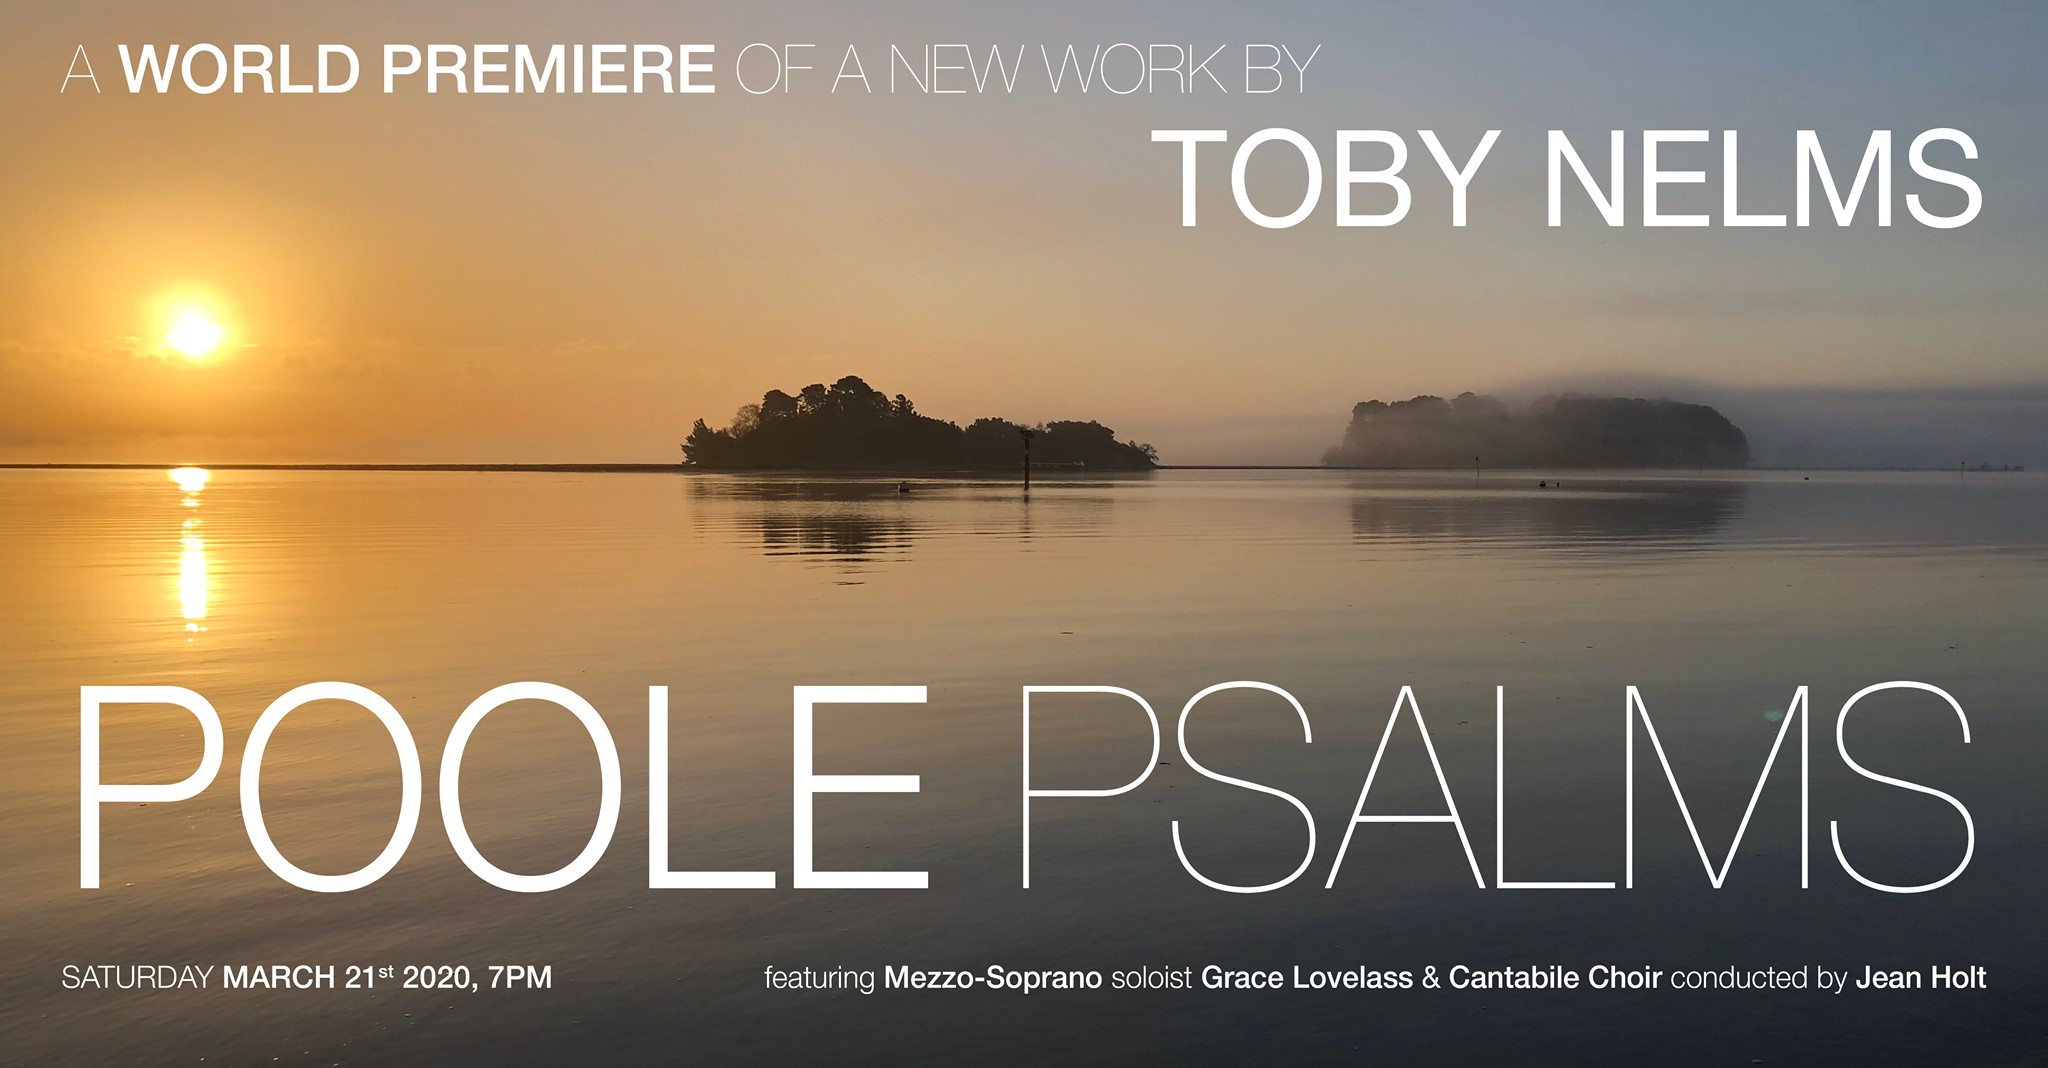 A set of 12 Psalms composed by our very own Toby Nelms